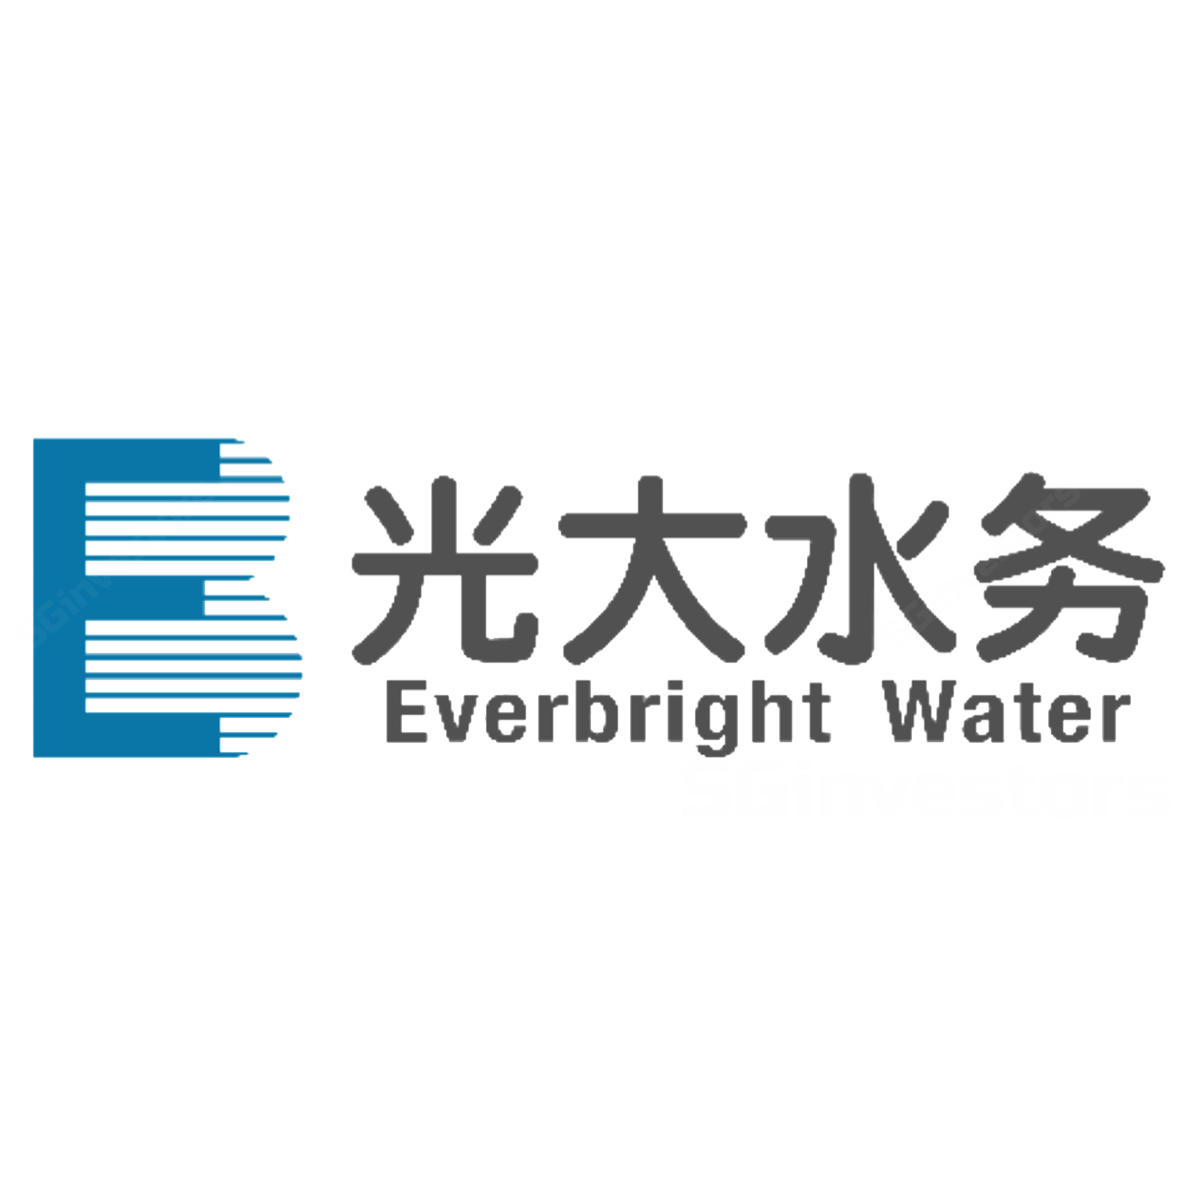 China Everbright Water - RHB Invest 2017-11-15: Project Wins For Earnings Gain